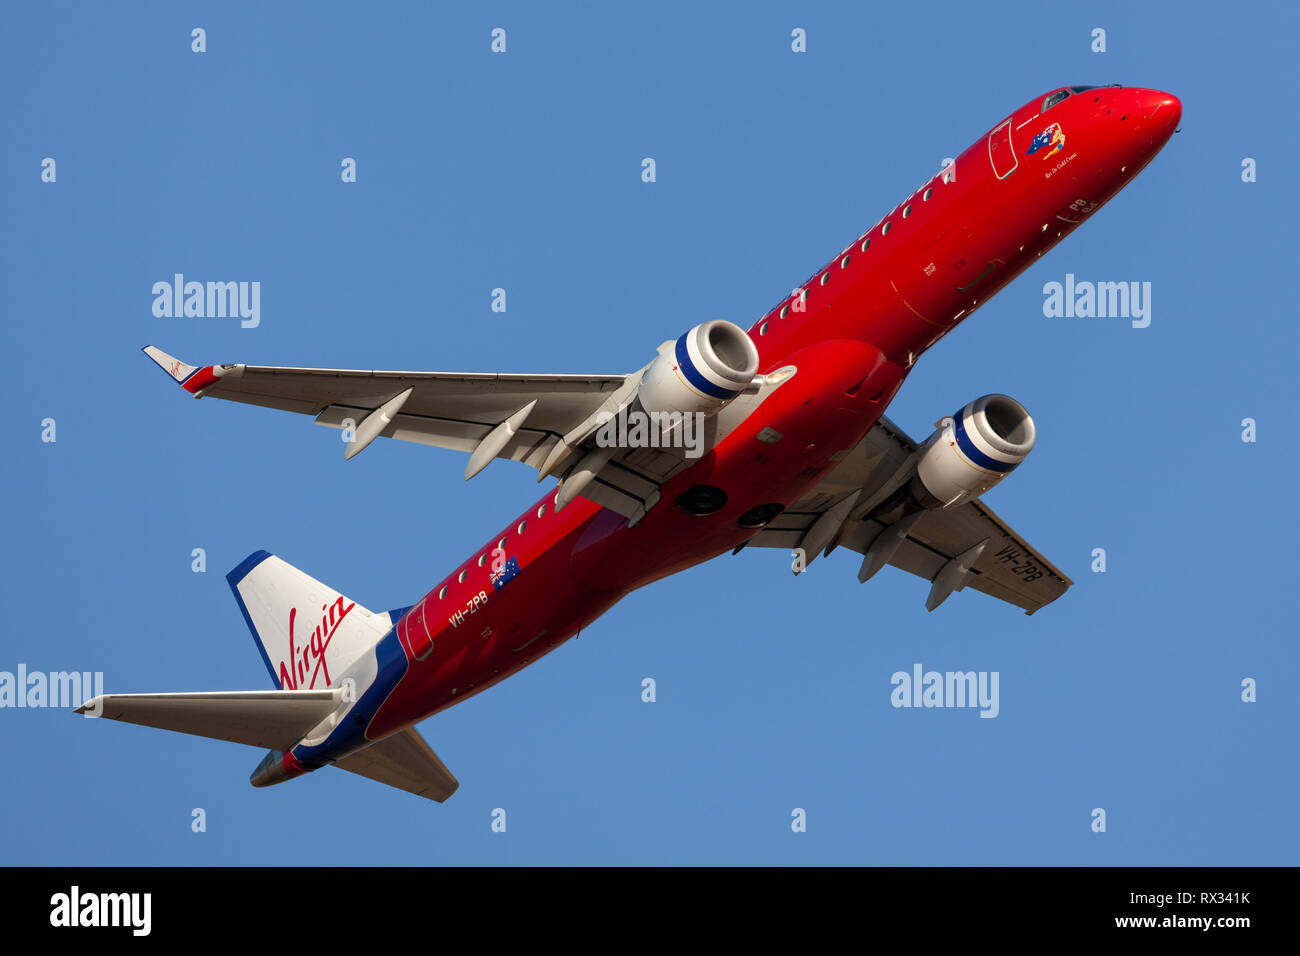 Virgin Blue Airlines (Virgin Australia Airlines) Embraer E-190 regional airliner taking off from Adelaide Airpo - Stock Image